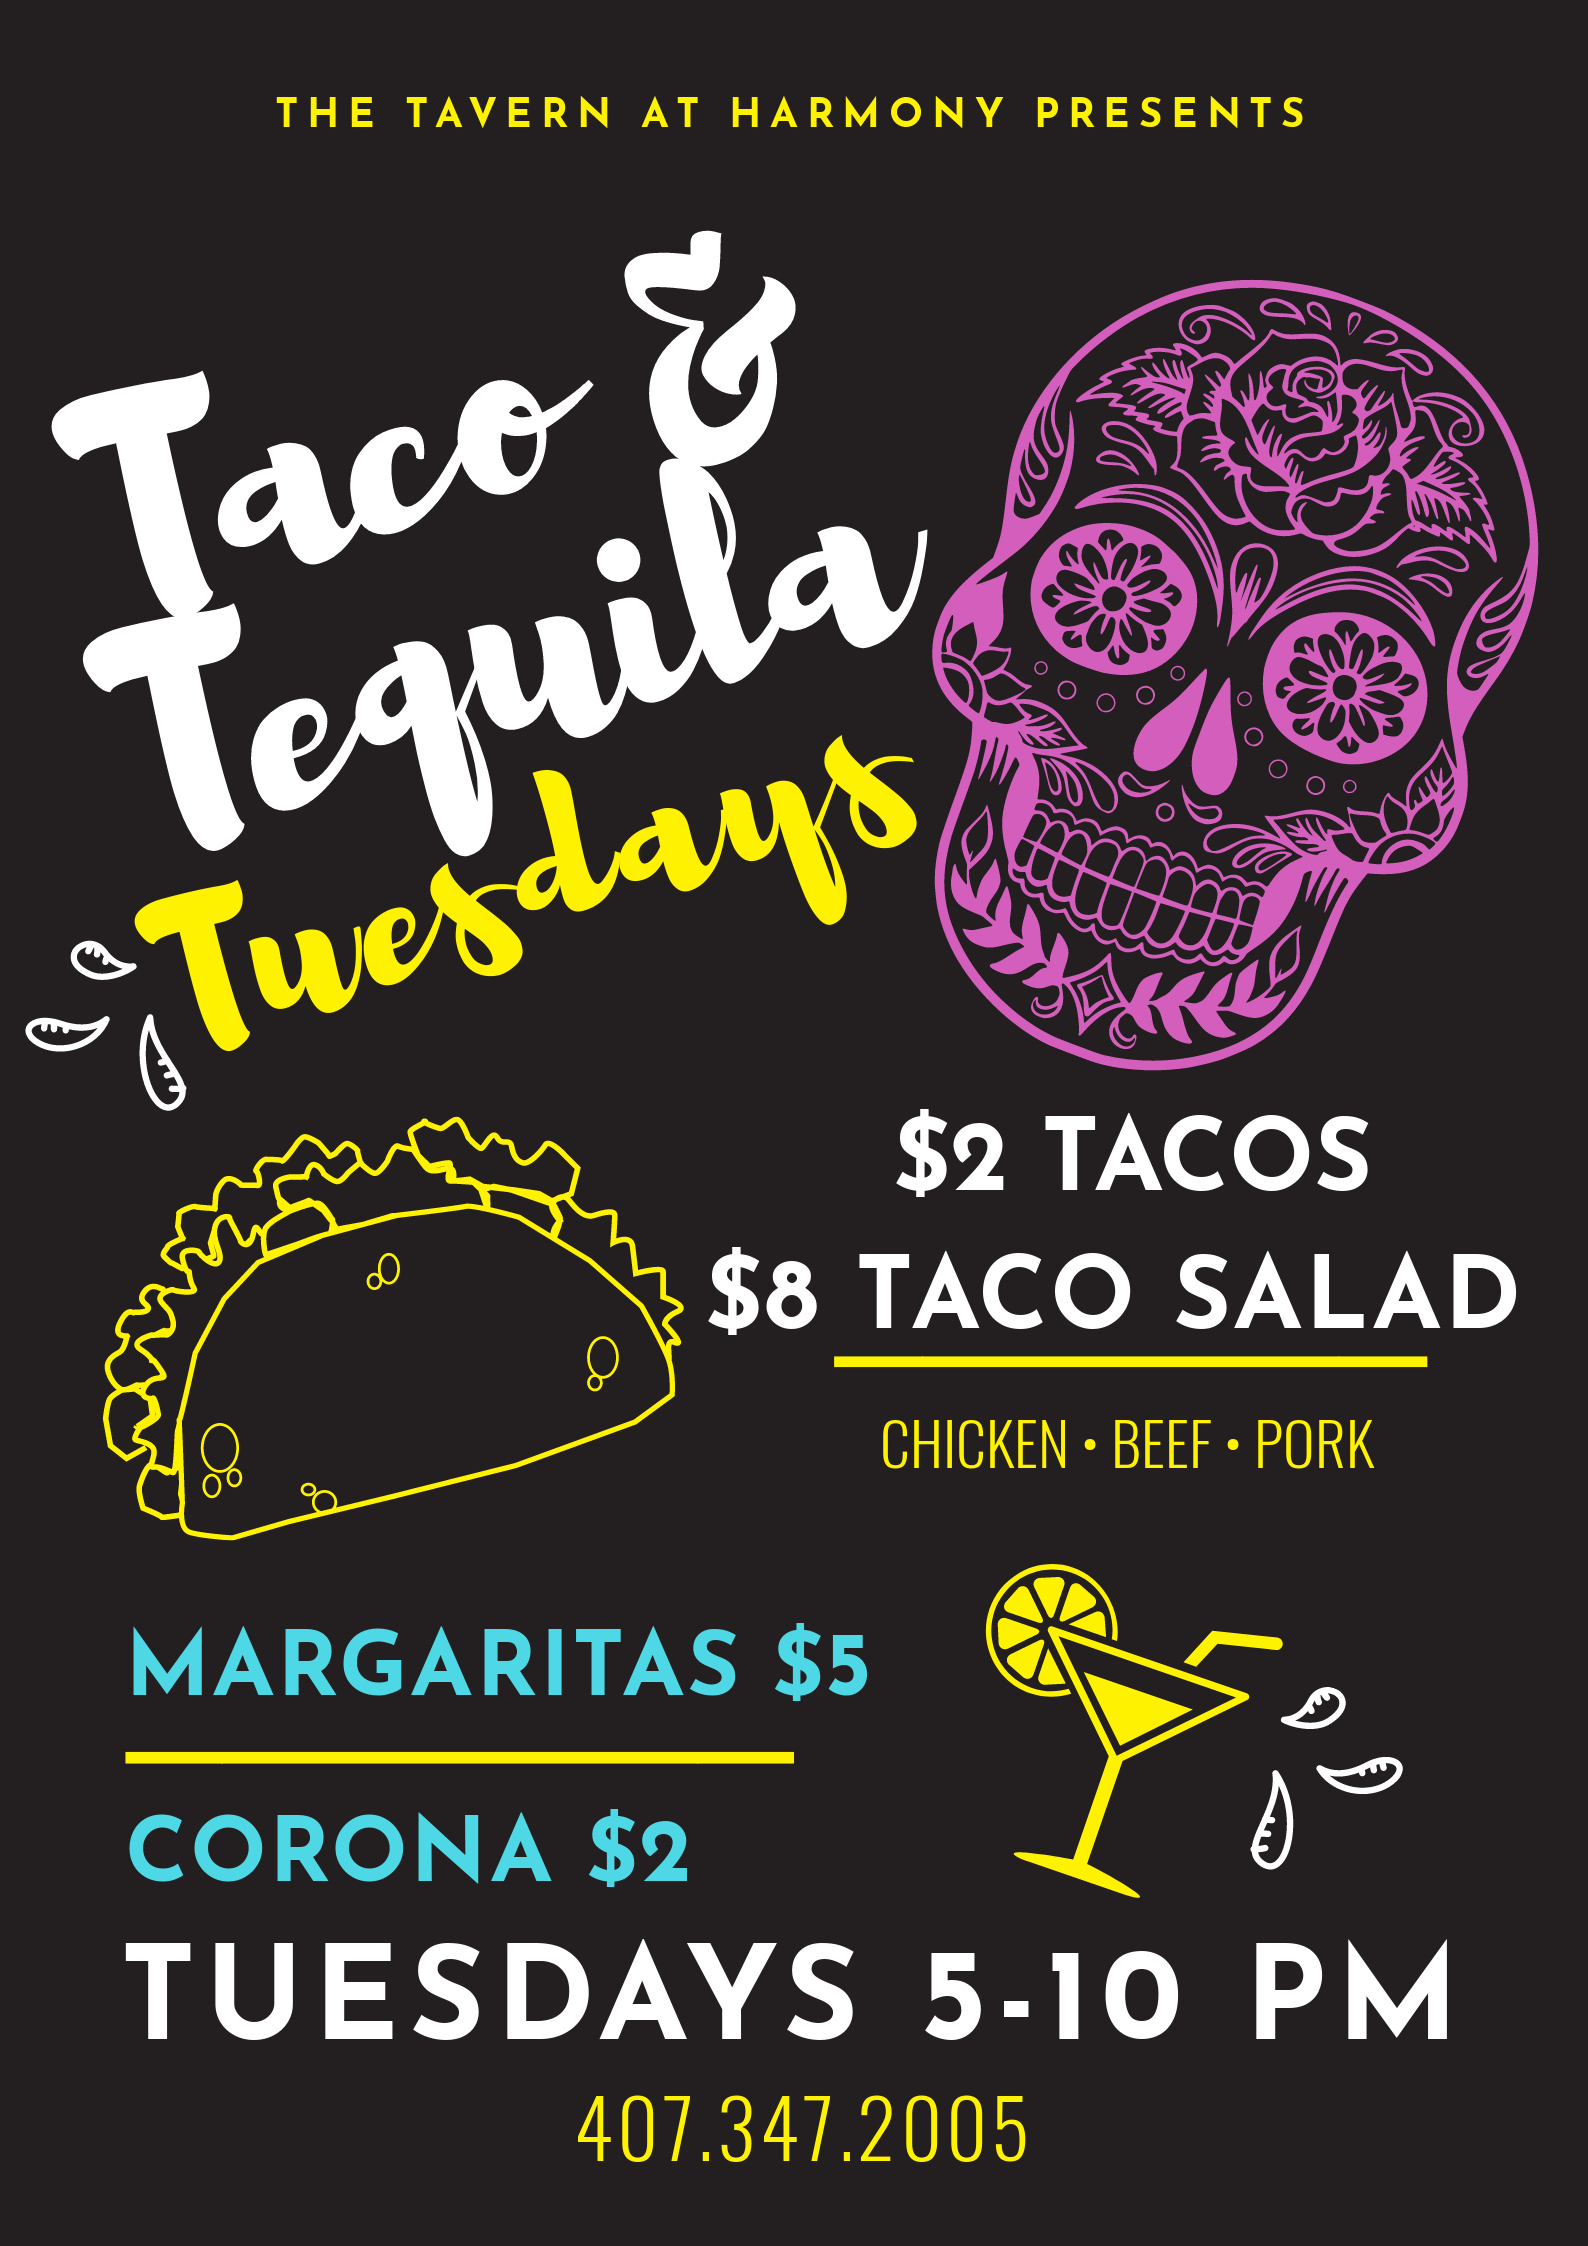 Taco and Tequila Tuesday